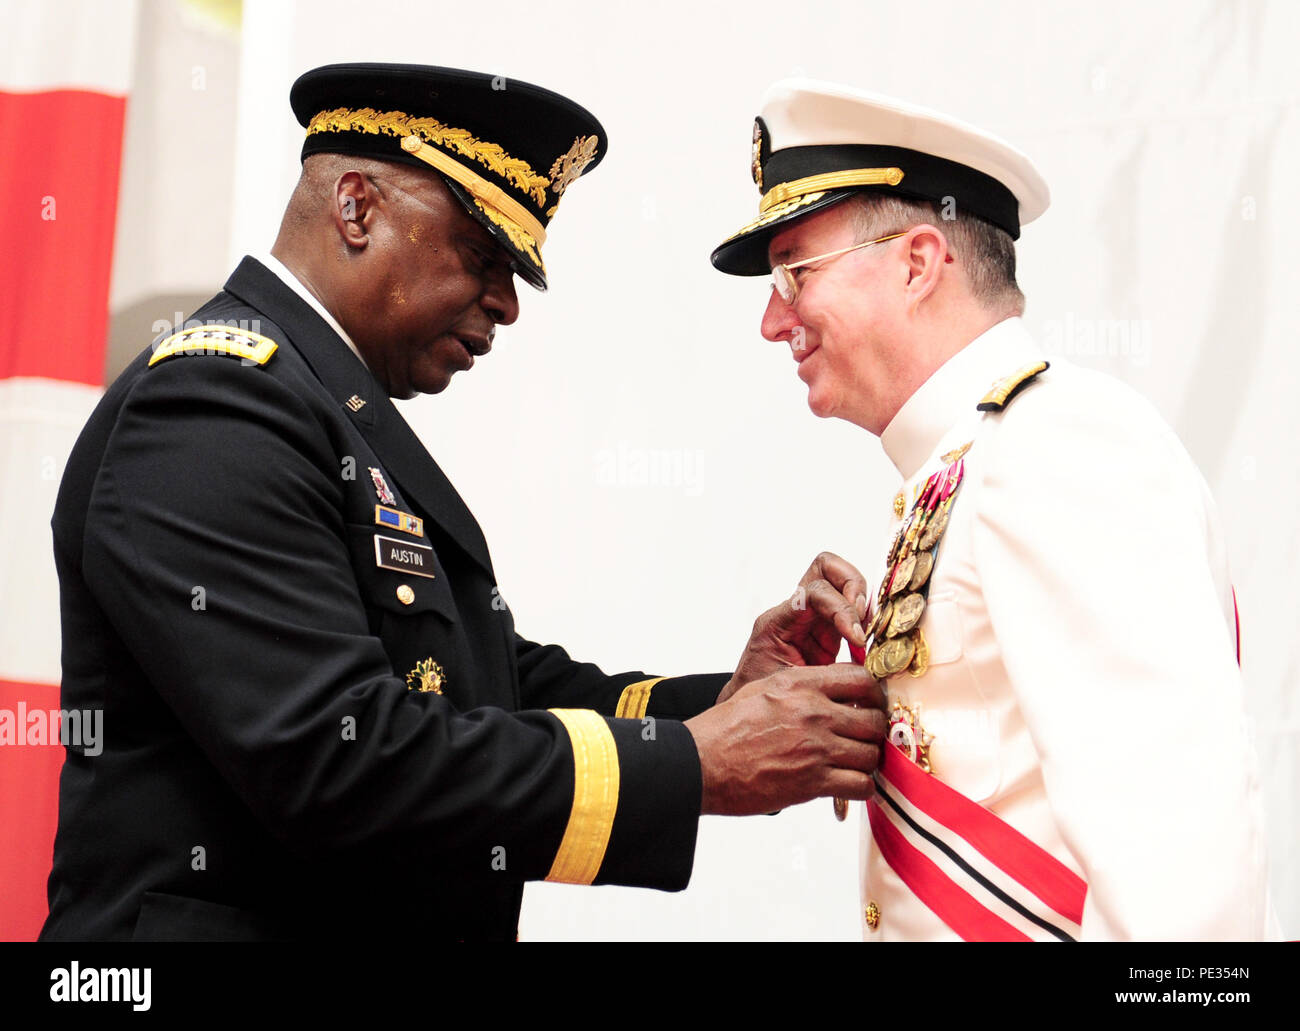 150903-N-SI600-269 MANAMA, Bahrain (Sept. 3, 2015) – U.S. Army General Lloyd J. Austin III, Commander, U.S. Central Command, awards Vice Adm. John W. Miller, outgoing commander of U.S. Naval Force Central Command/U.S. 5th Fleet/Combined Maritime Forces (NAVCENT/C5F/CMF), the Distinguished Service Medal during the NAVCENT/C5F/CMF change-of-command ceremony held aboard USS Theodore Roosevelt (CVN 71), in port here. Vice Adm. Kevin M. Donegan relieved Miller as commander of NAVCENT/C5F/CMF. (U.S. Navy photo by Mass Communication Specialist 3rd Class Anthony Hopkins/Released) Stock Photo